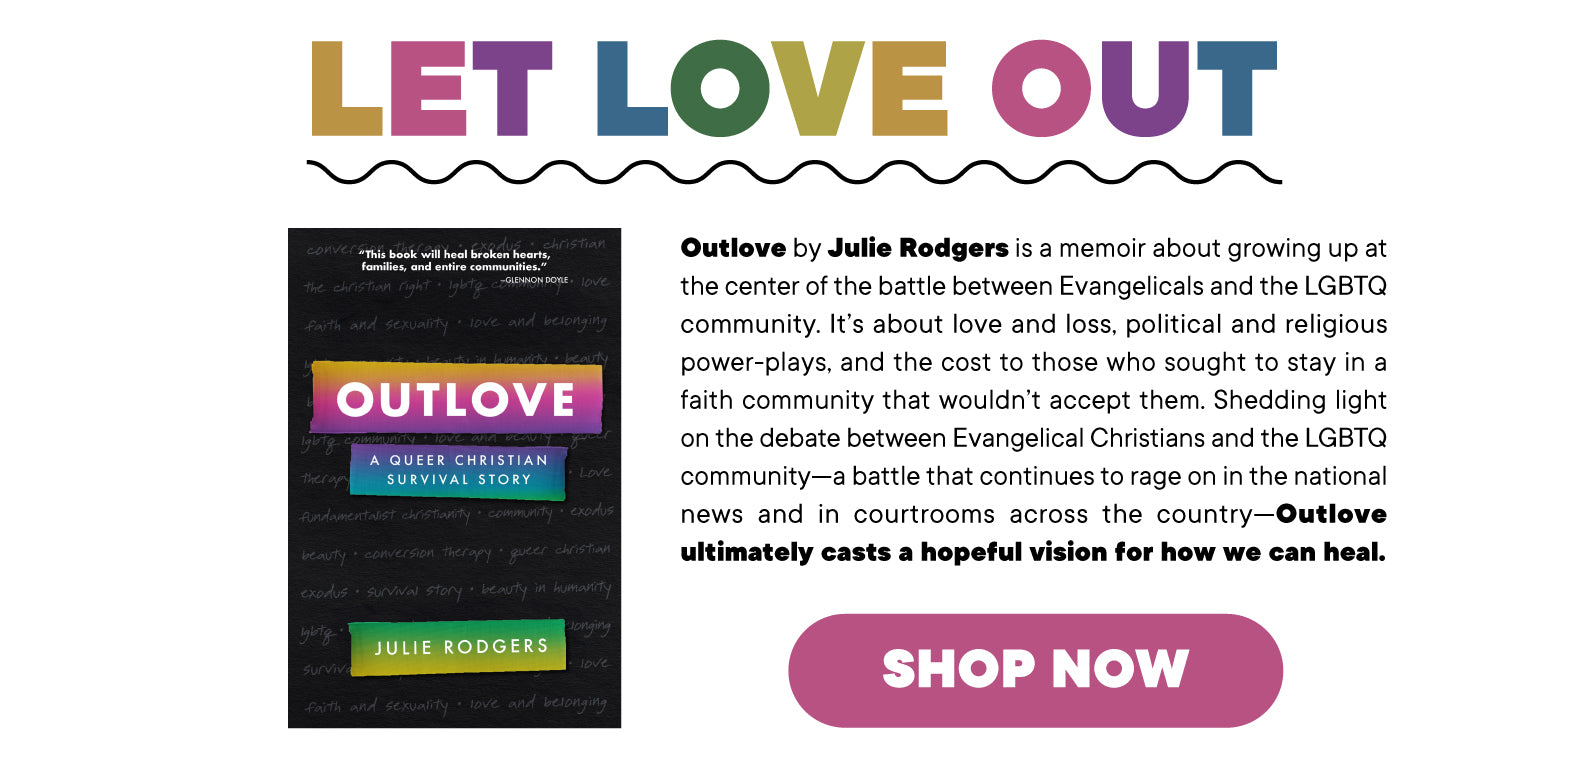 Outlove by Julie Rodgers is a memoir about growing up at the center of the battle between Evangelicals and the LGBTQ community. It's about love and losses, political and religious power-plays, and the cost to those who sought to stay in a faith community that wouldn't accept them. Shedding light on the debate between Evangelical Christians and the LGBTQ community—a battle that continues to rage on in the national news and in courtrooms across the country—Outlove ultimately casts a hopeful vision for how we can heal.